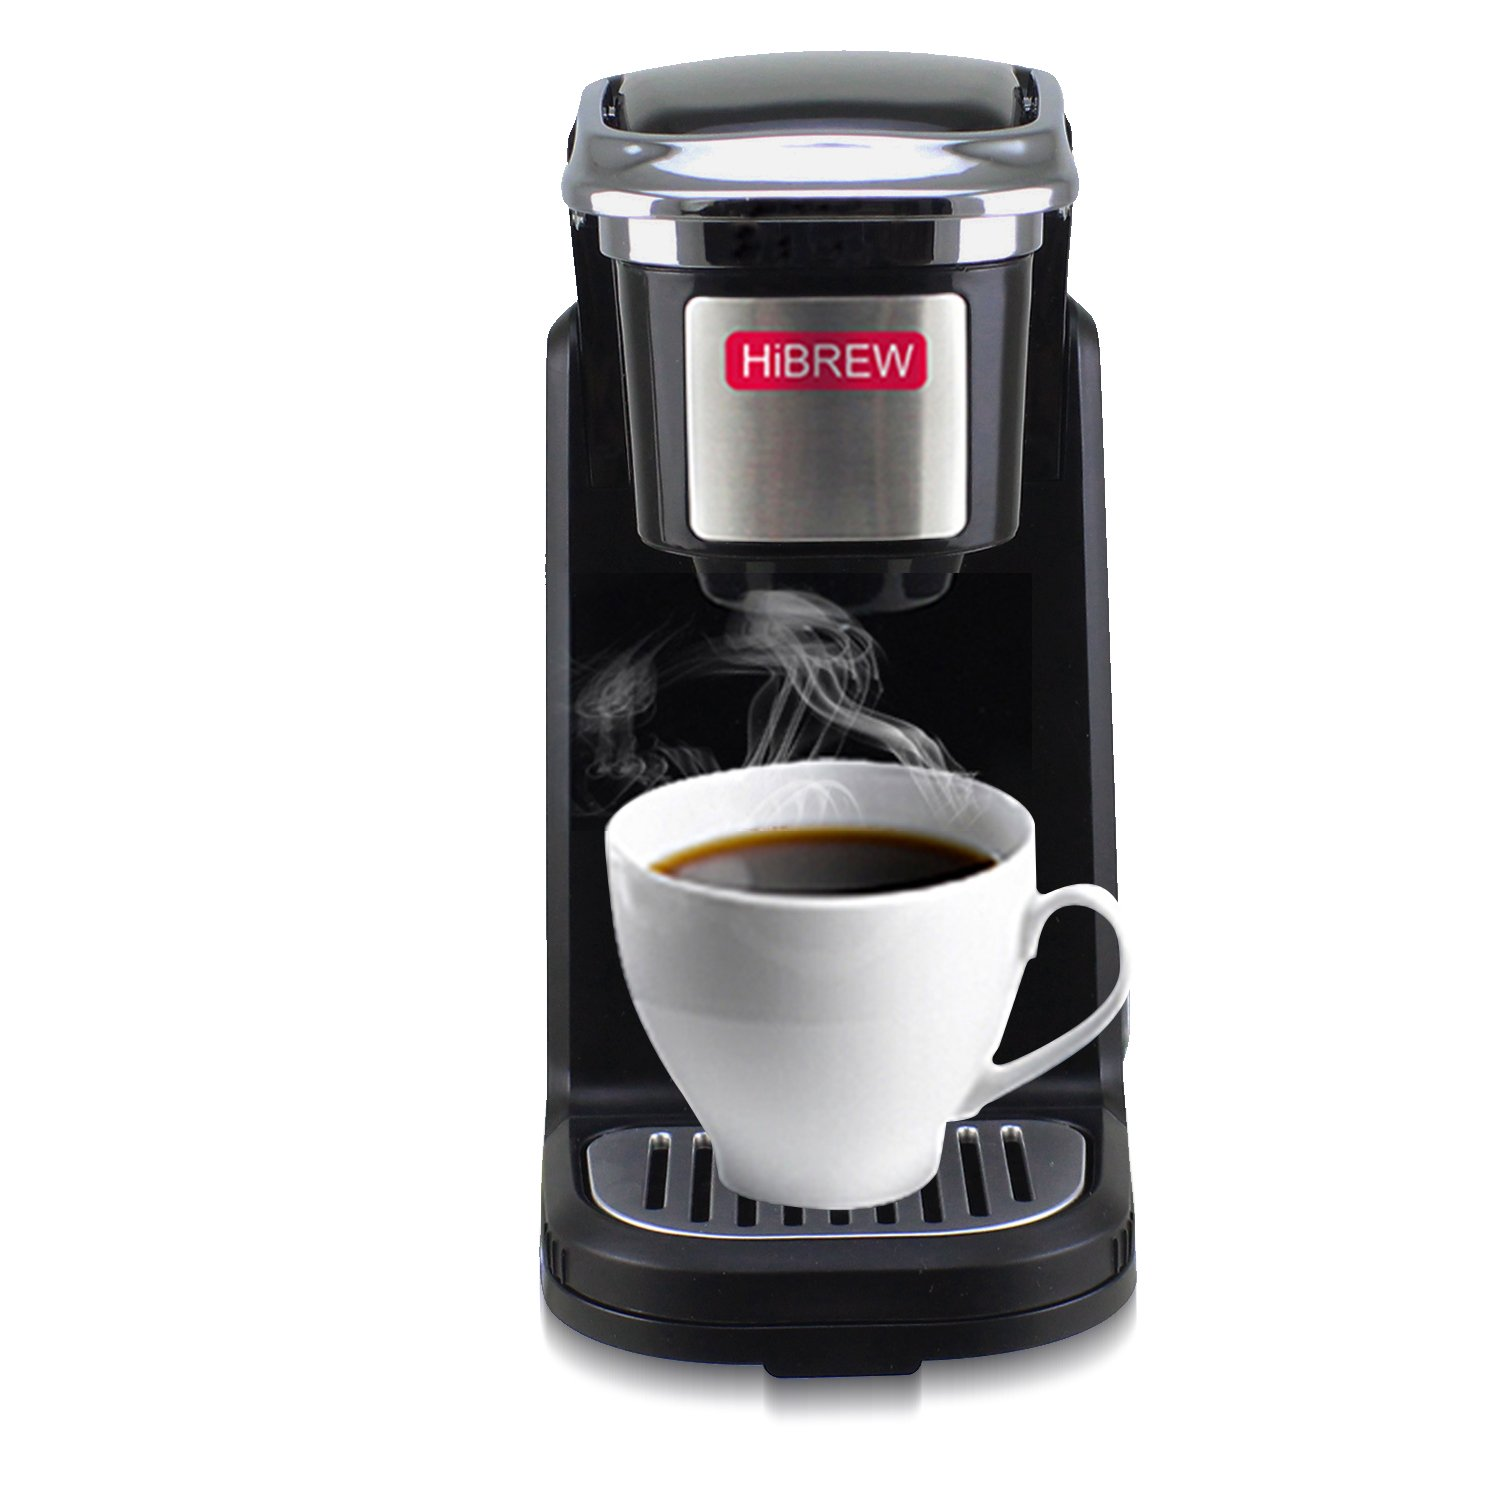 HiBREW Single Serve Black Compact Portable Travel Size Single Cup Coffee Maker Brewing System Coffee Machine for Office, Travel Camping and Hotel Dorm Hospitality (Black)